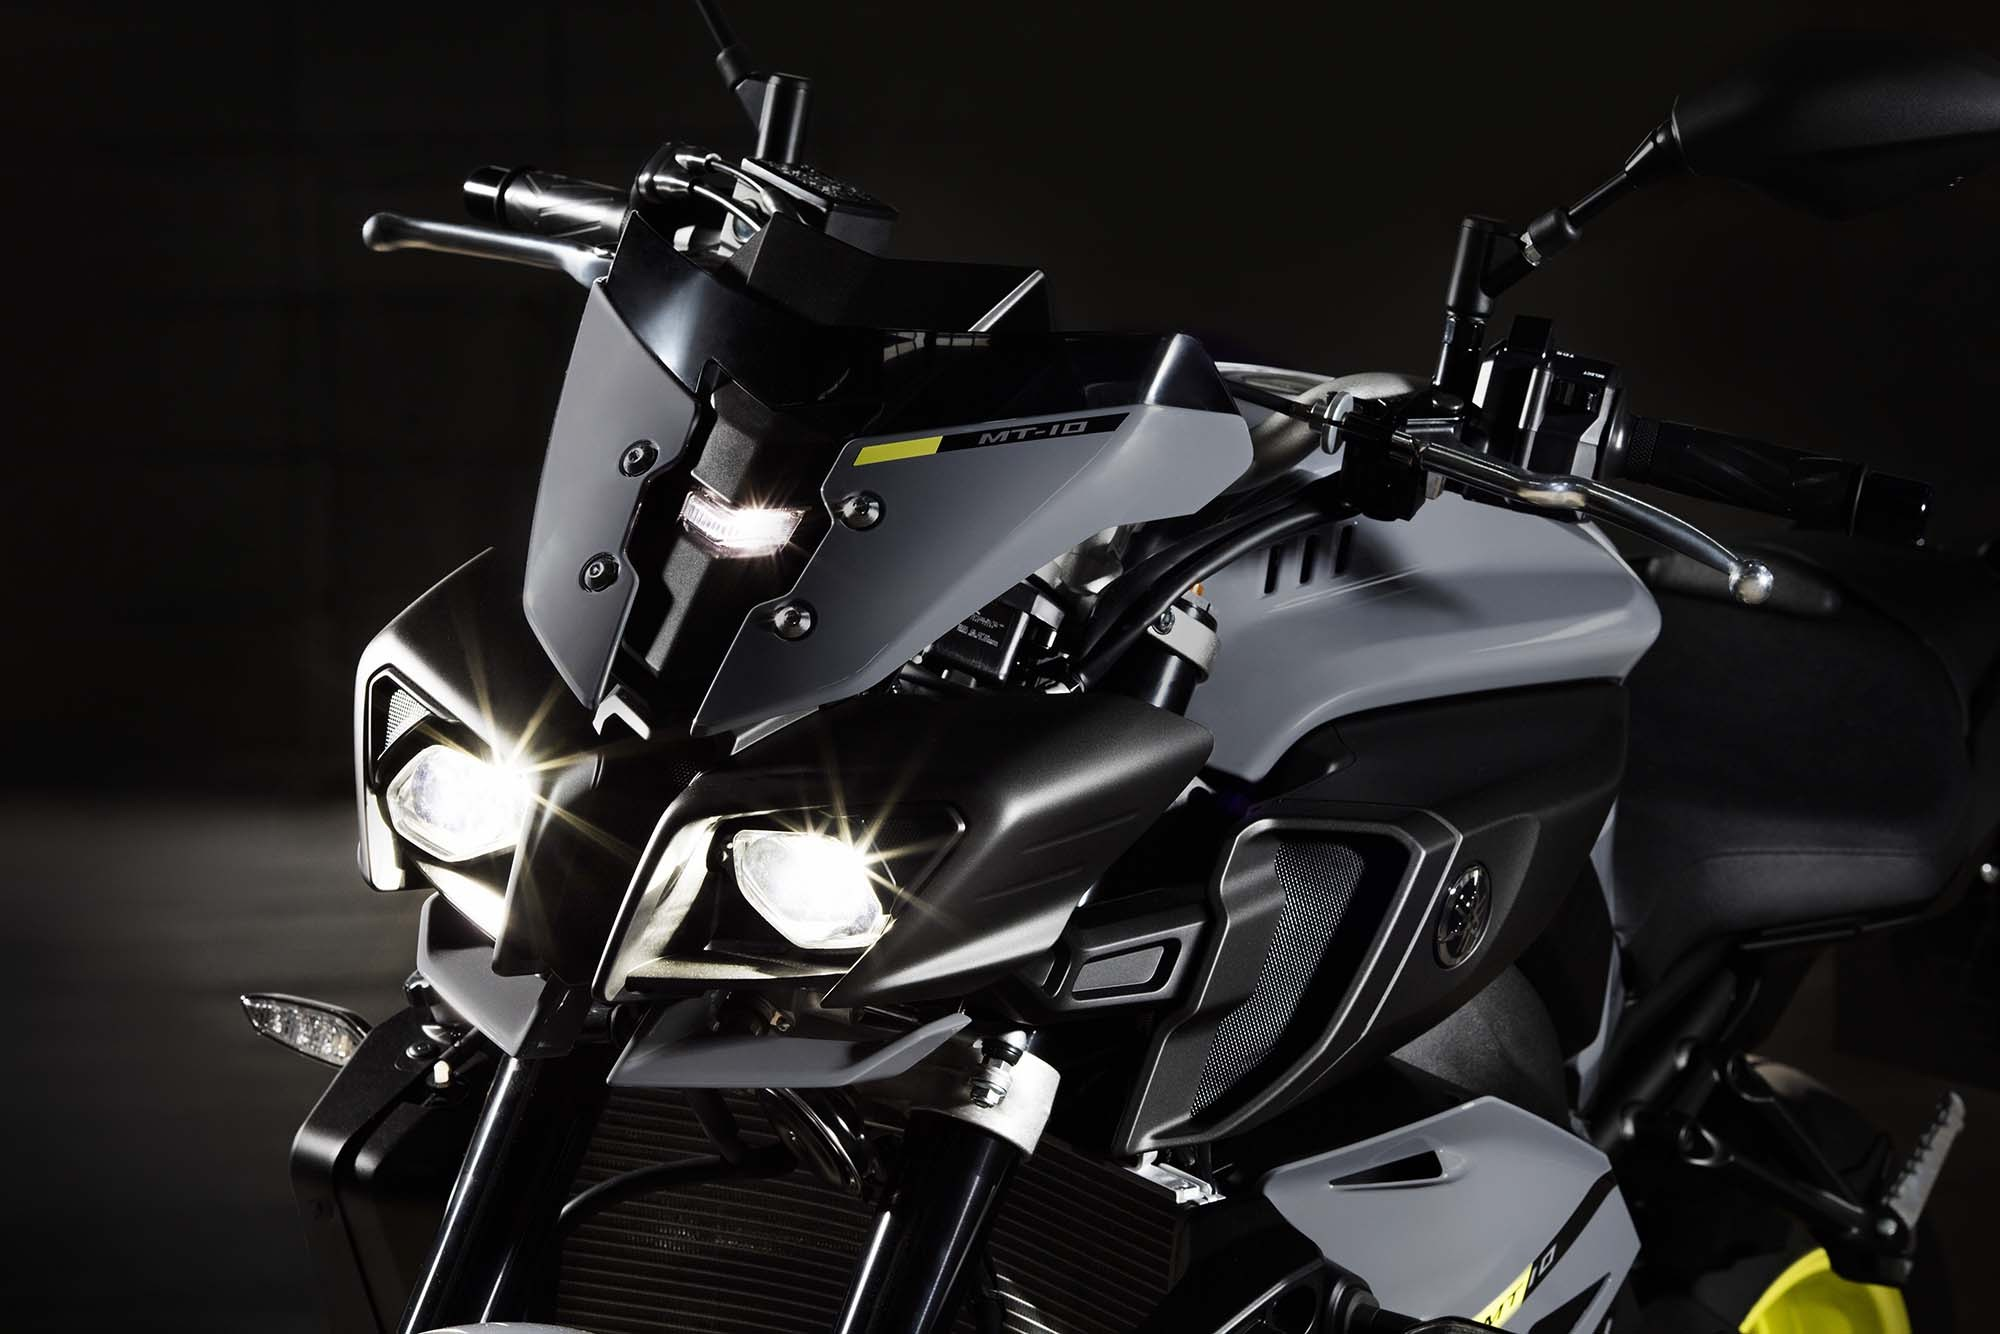 Yamaha Mt 10 Wallpapers Vehicles Hq Yamaha Mt 10 Pictures 4k Wallpapers 2019